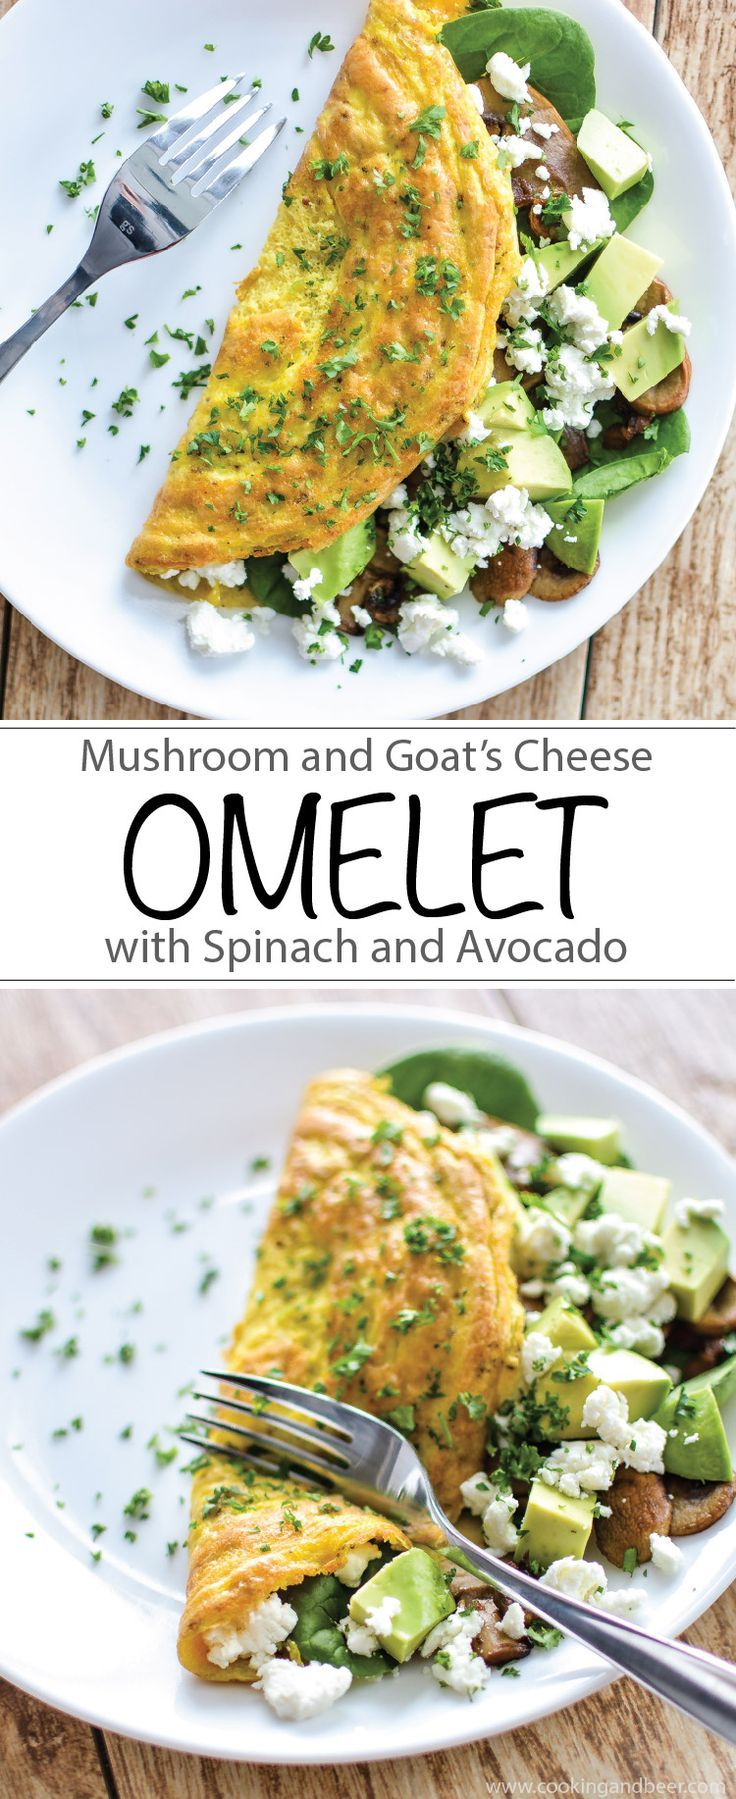 Mushroom and Goat's Cheese Omelet with Spinach and Avocado is the perfect protein-packed, gluten-free, dairy-free breakfast! | http://www.cookingandbeer.com